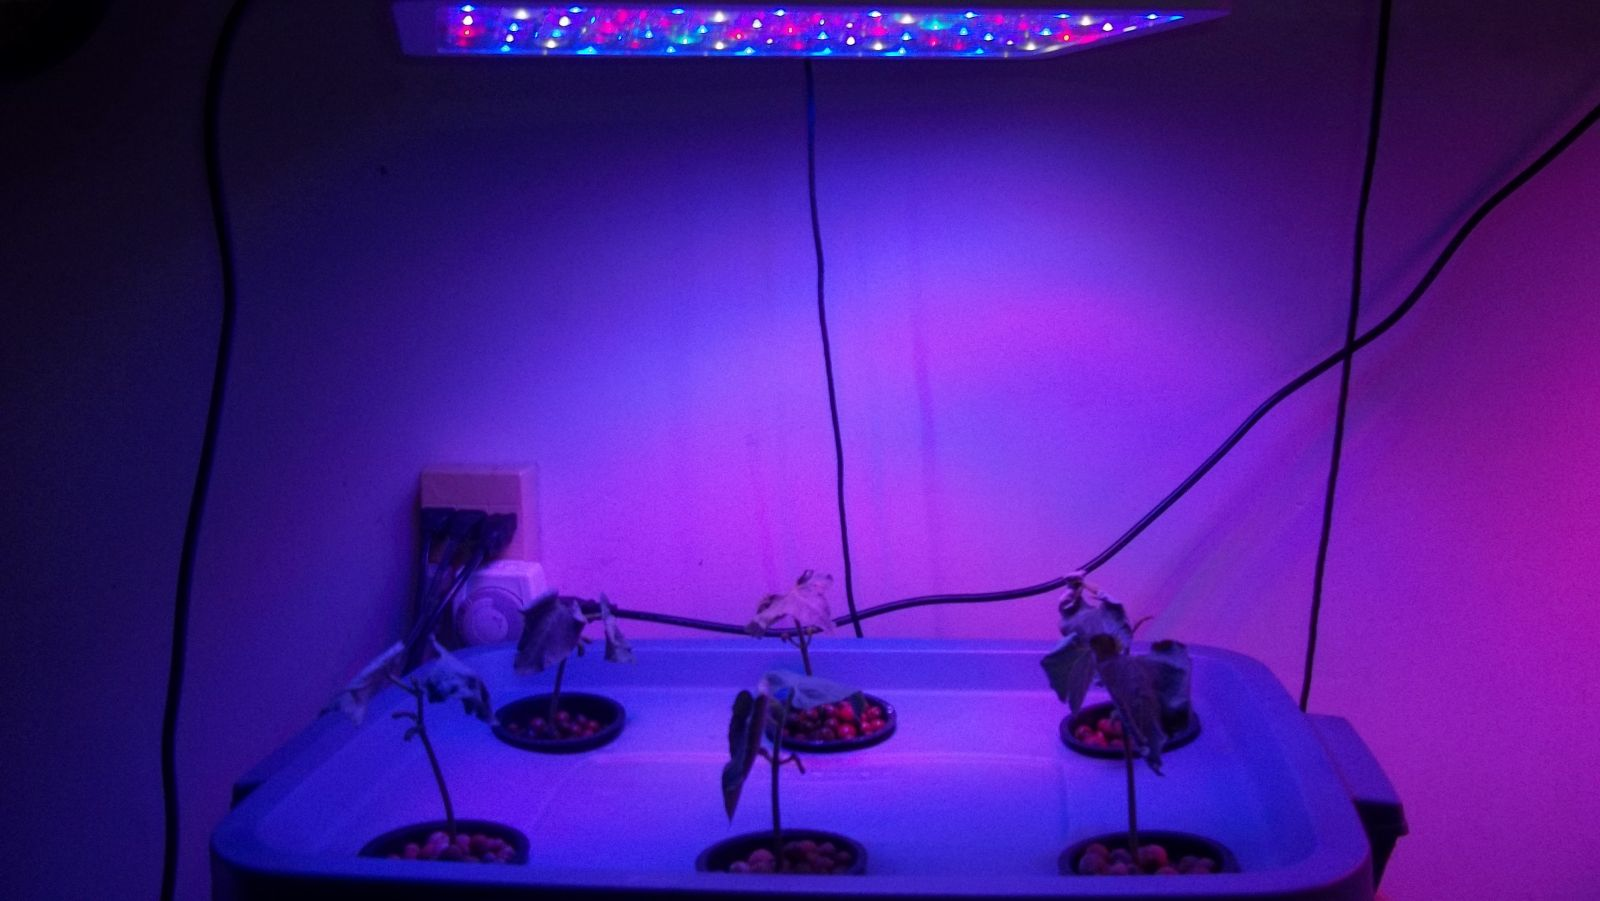 VEG mode led light